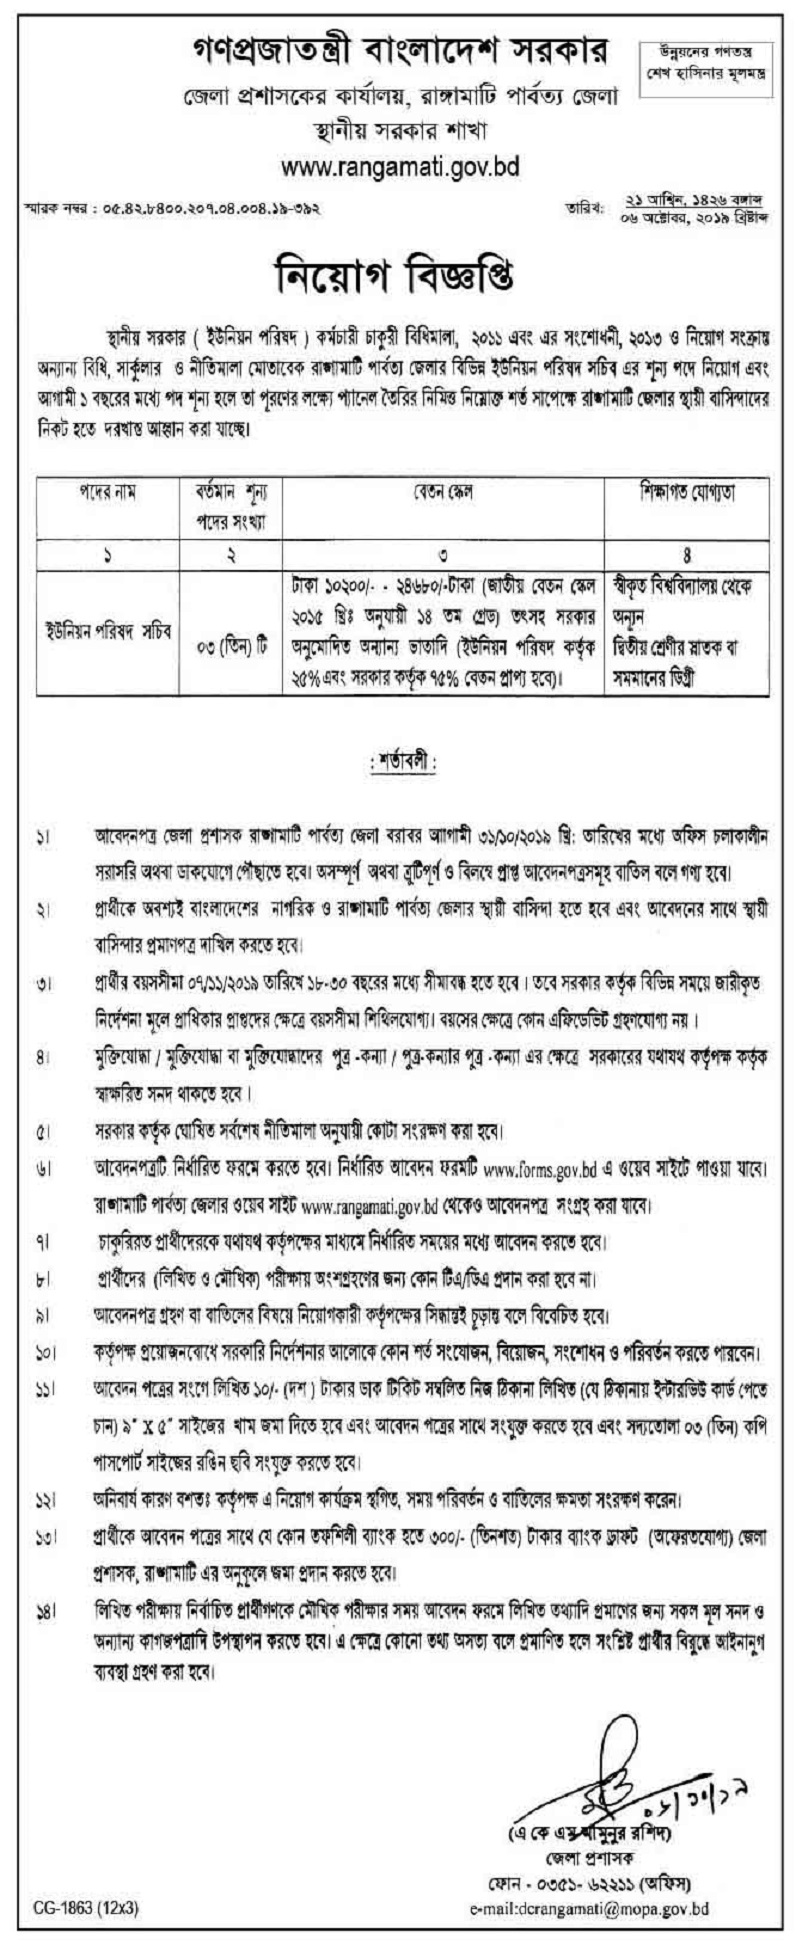 Rangamati Deputy Commissioner's Office Job Circular 2019